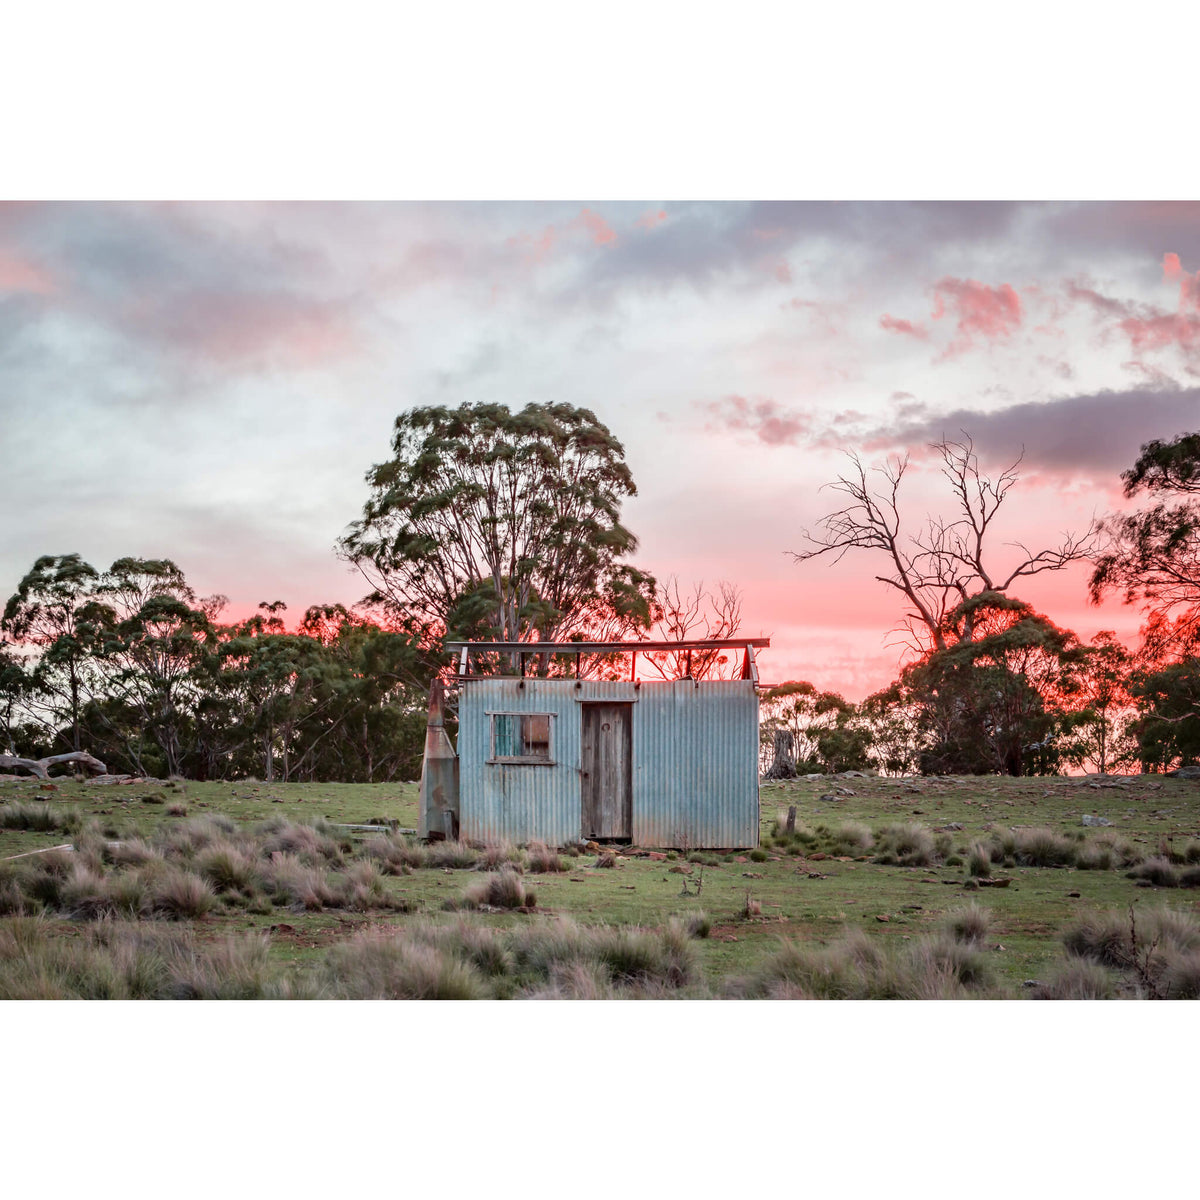 Gunningrah Drover's Hut | A Place To Call Home Fine Art Print - Lost Collective Shop